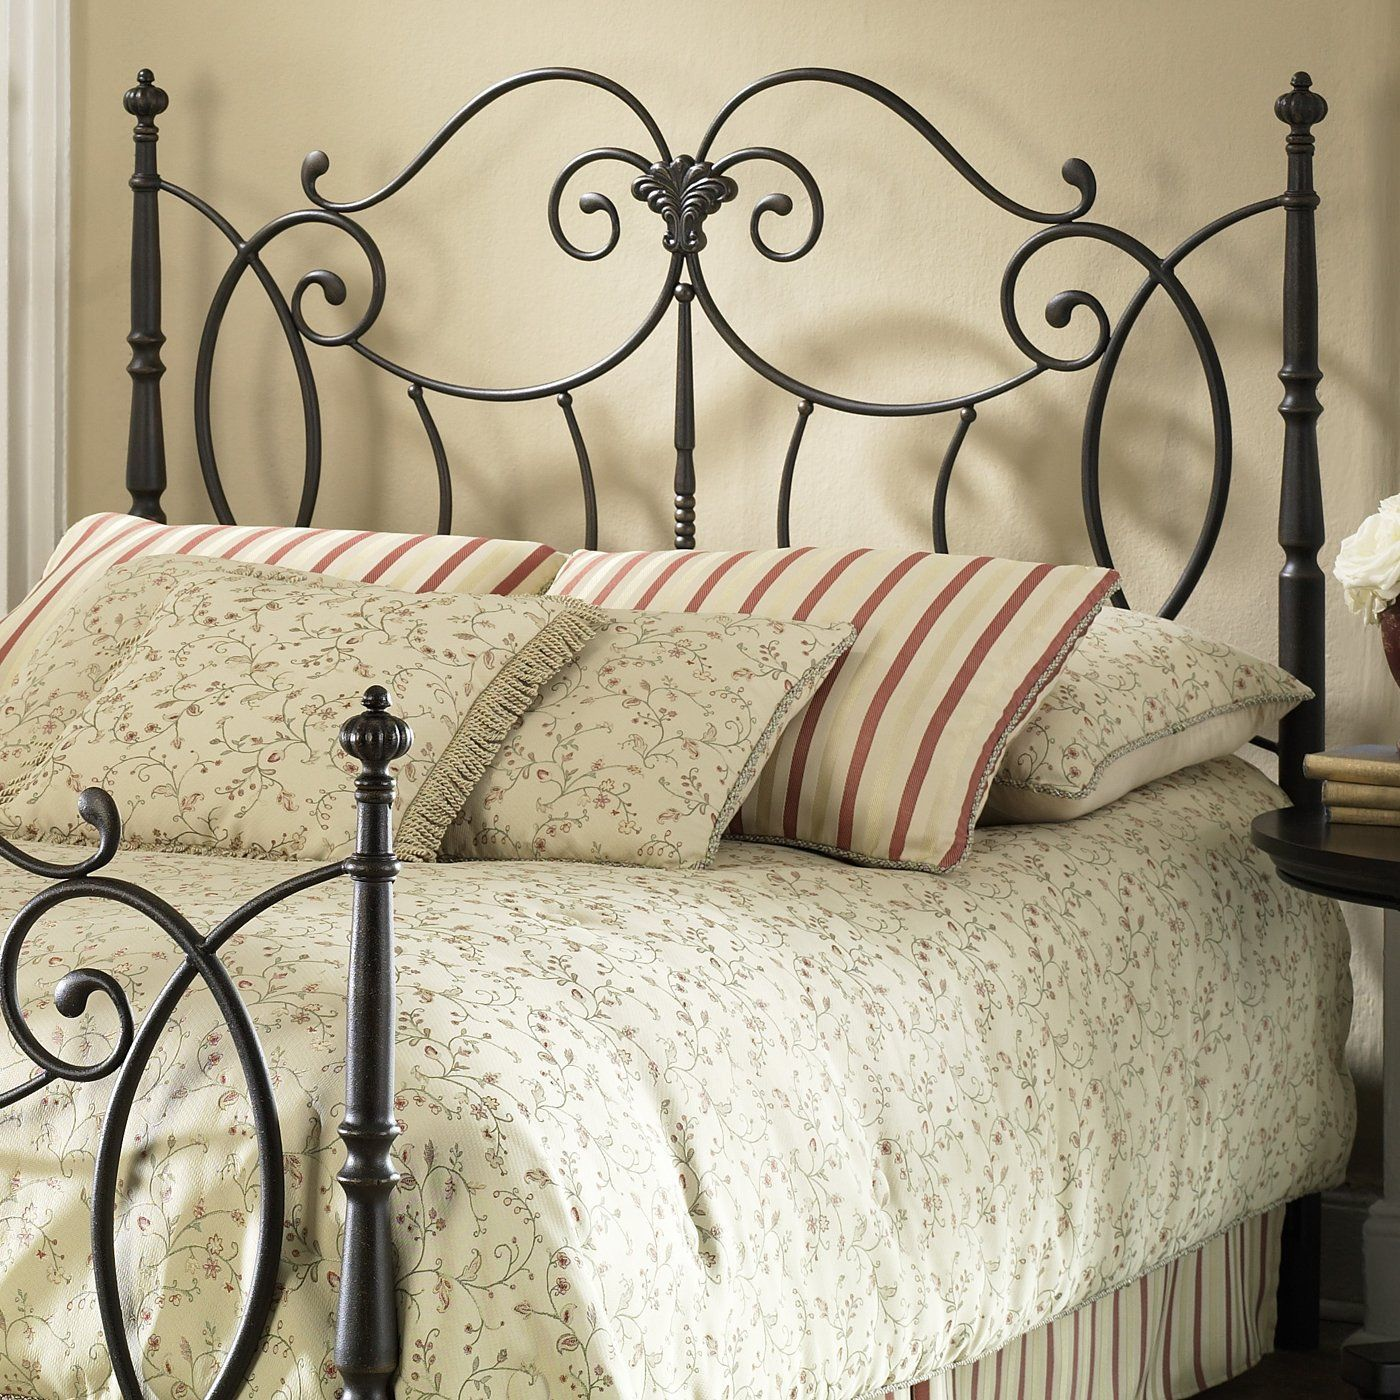 Fashion Bed Group B1230 Shannon vintage grey color Headboard $187